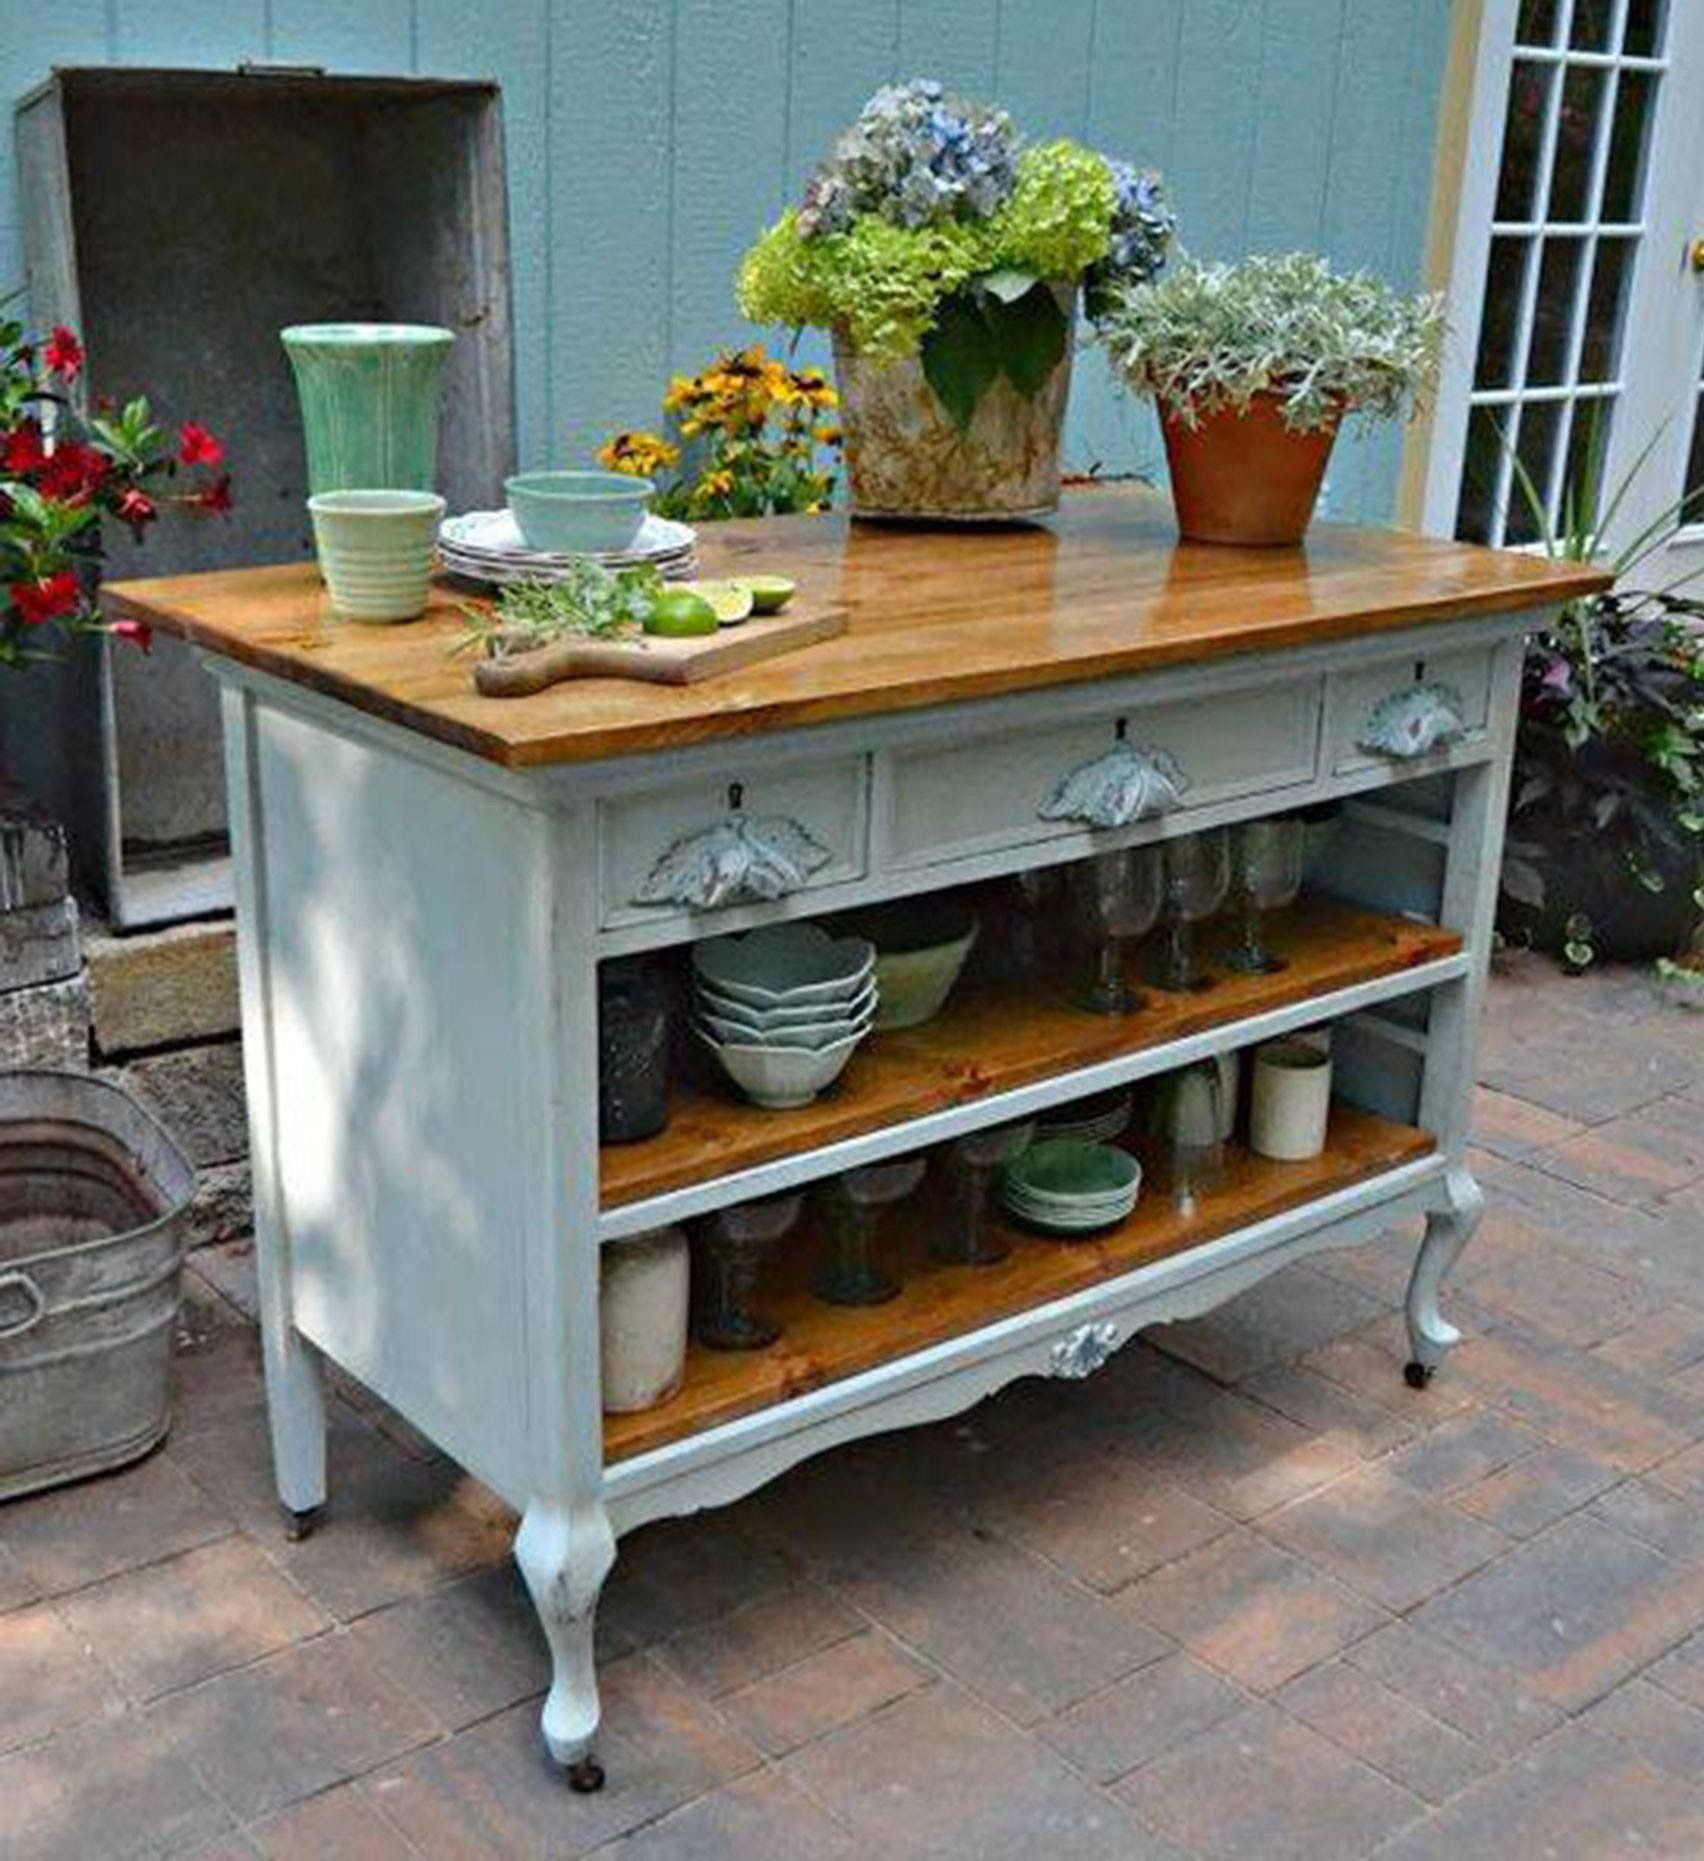 old dresser converted to kitchen island painting inspiration pinterest dresser kitchens. Black Bedroom Furniture Sets. Home Design Ideas